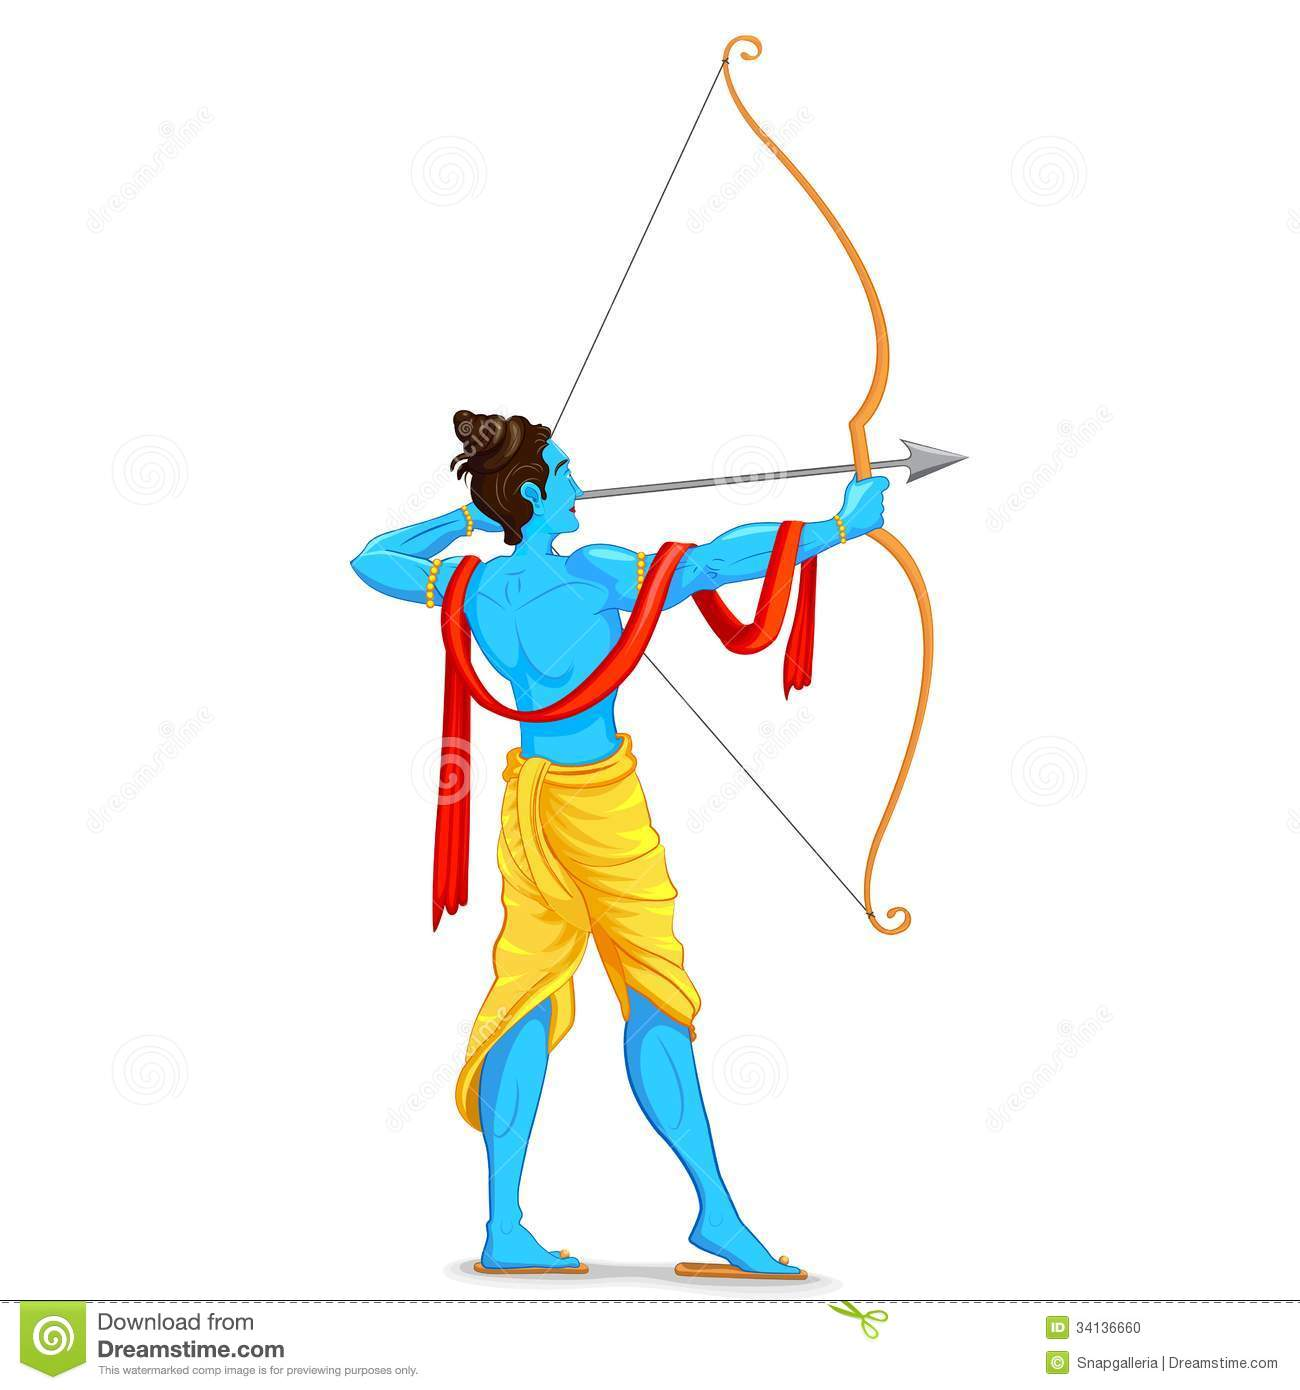 Lord Ganesha Animated Wallpapers Lord Rama With Bow And Arrow Stock Photo Image 34136660